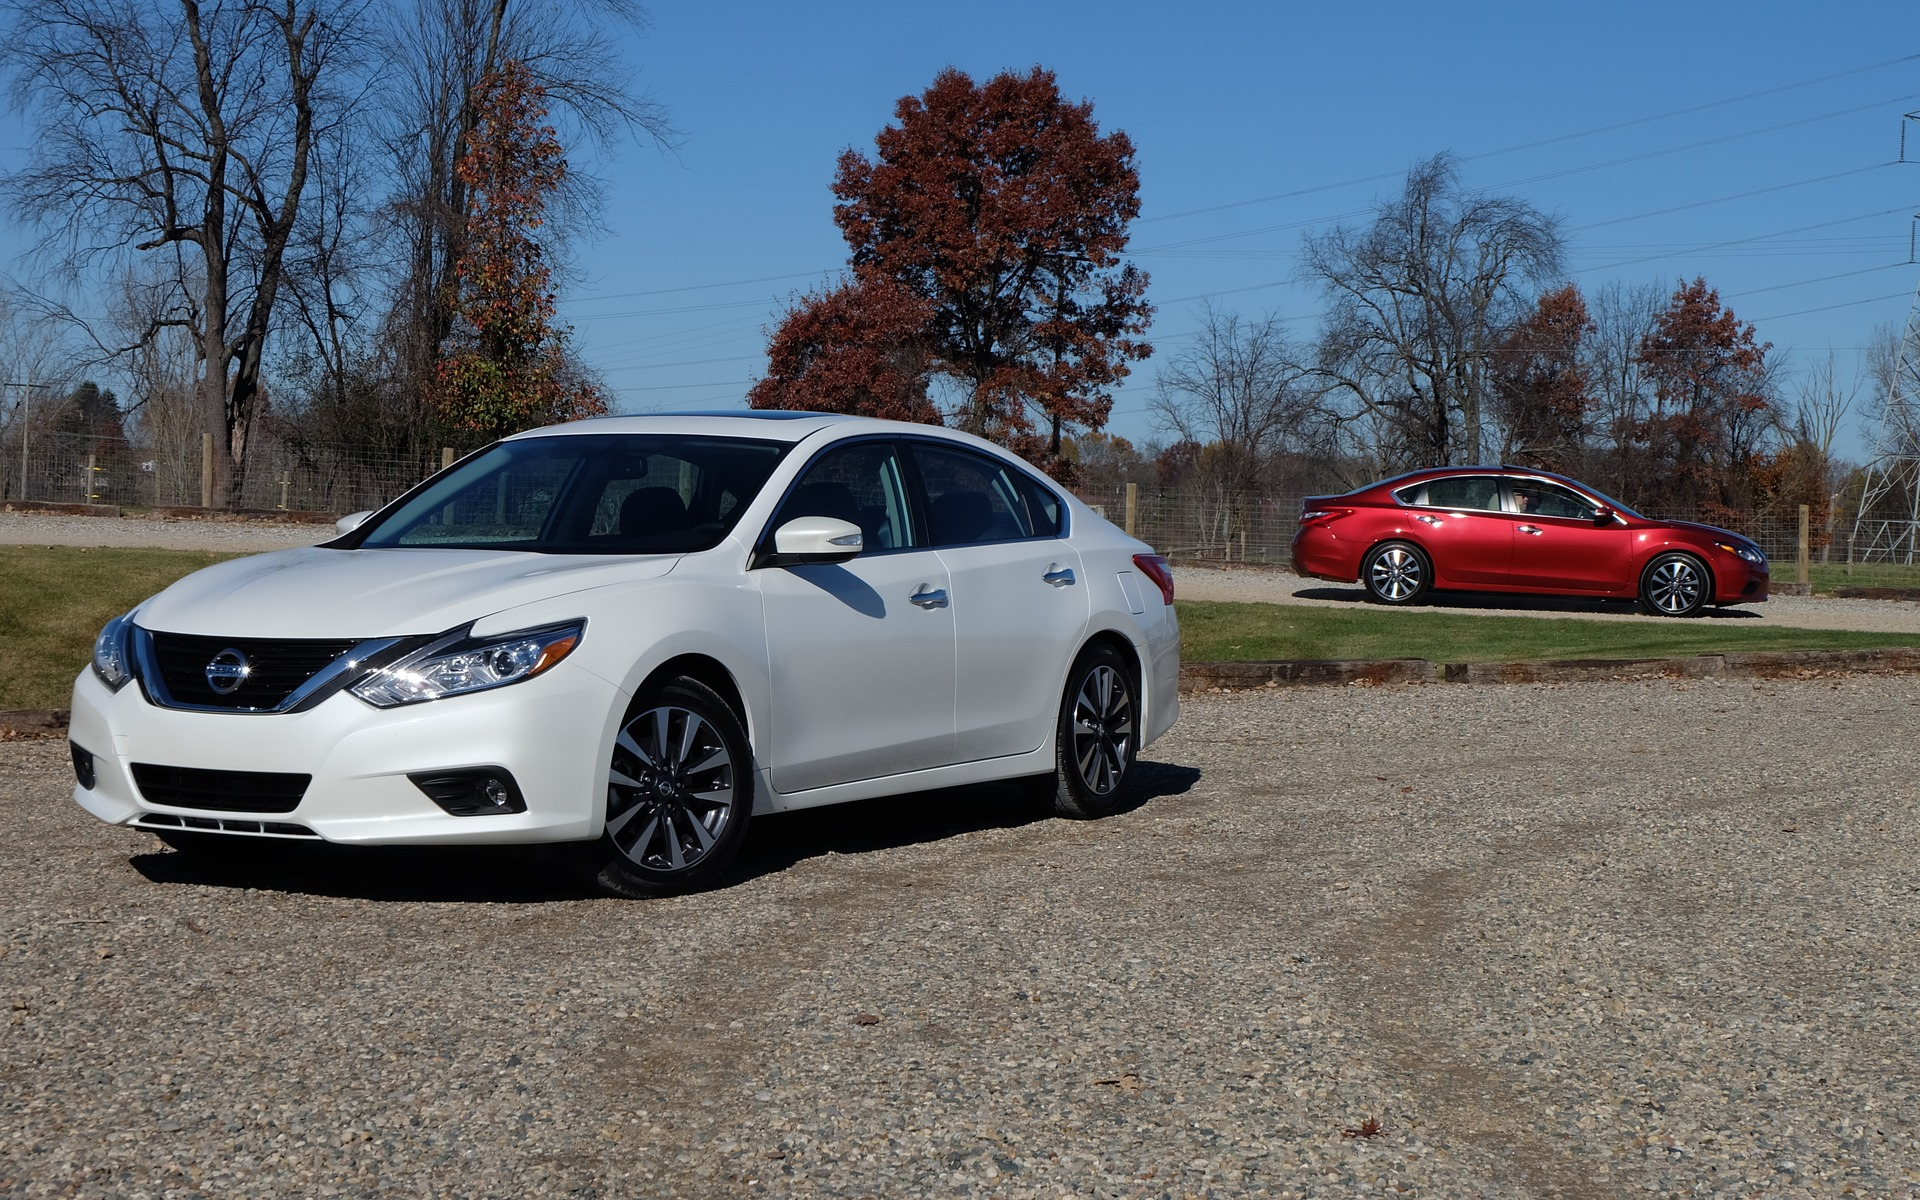 The 2016 Nissan Altima receved a facelift